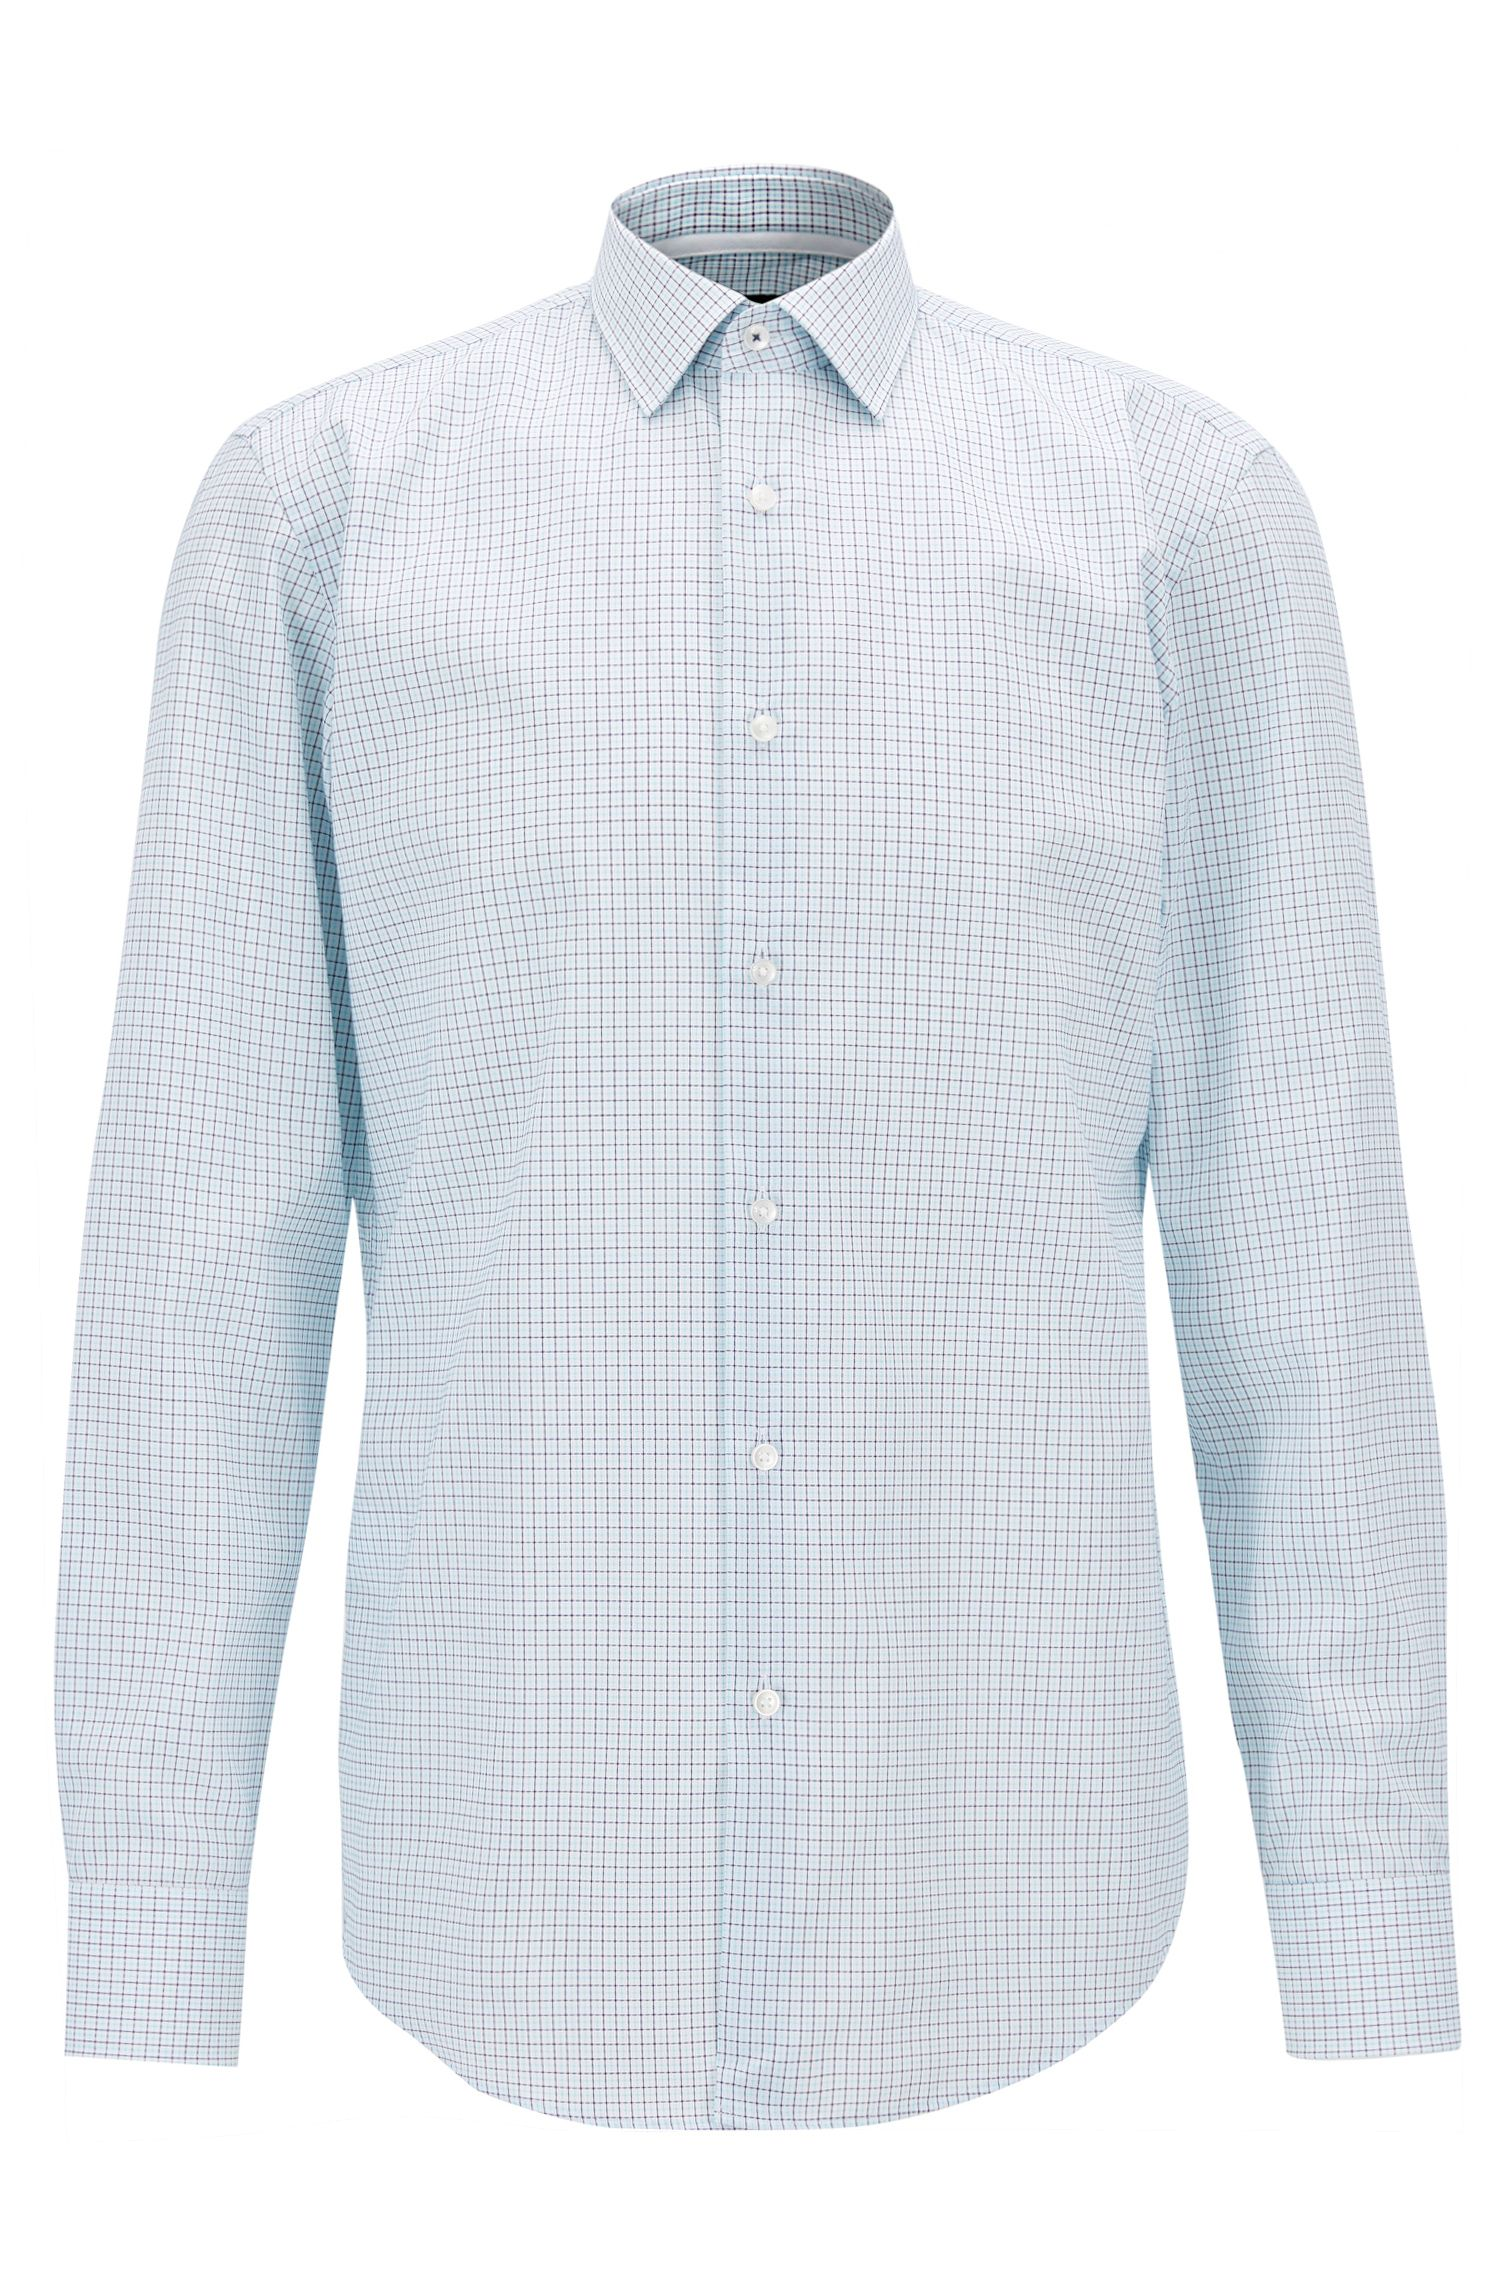 Plaid Cotton Dress Shirt, Slim Fit | Jesse